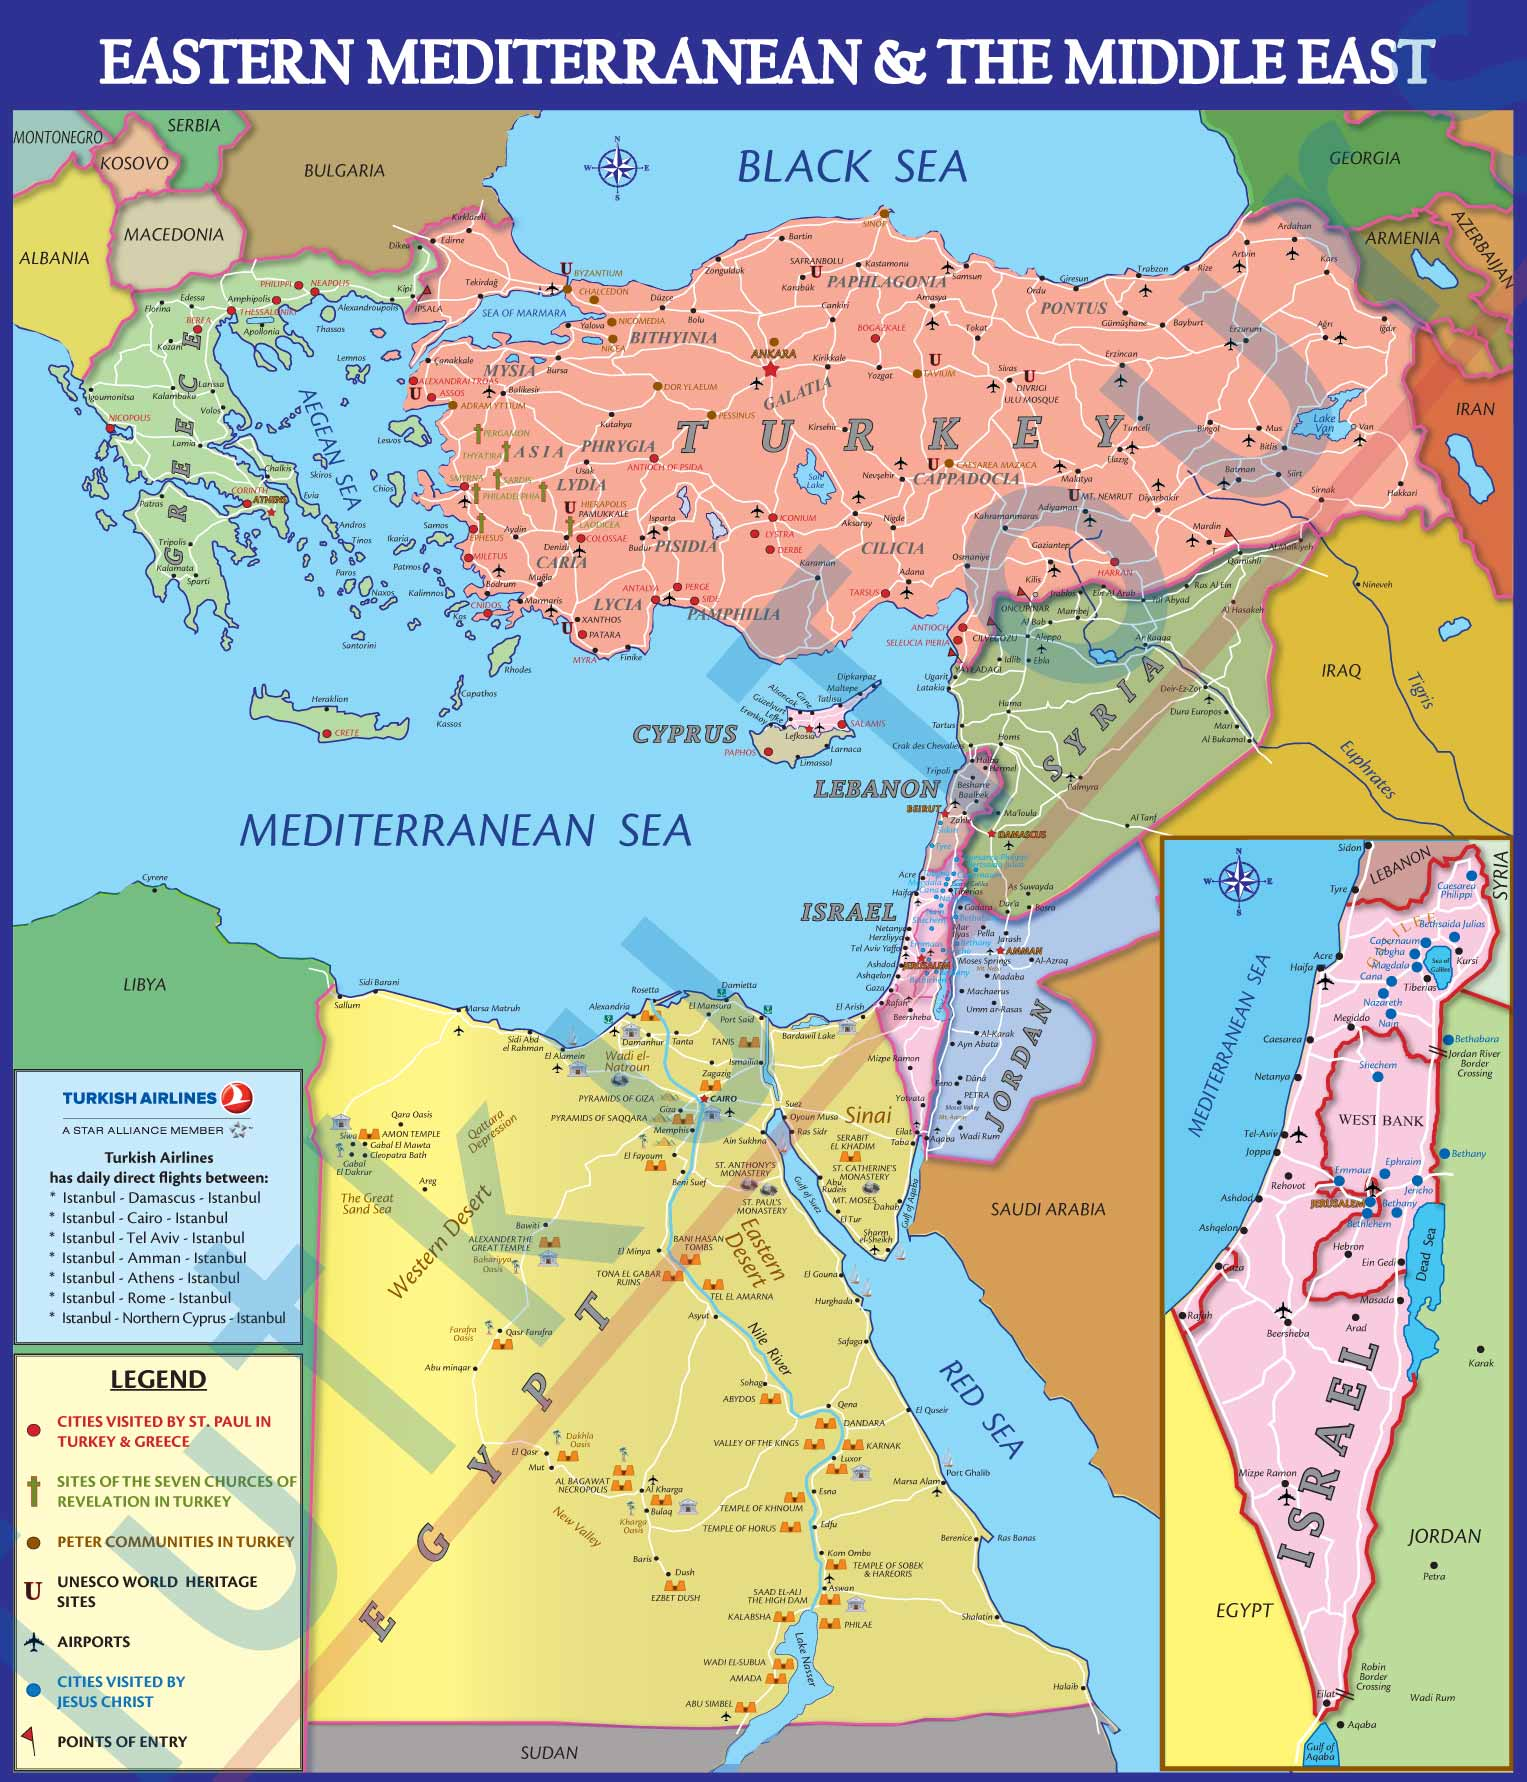 large map of sinai html with Eastern Mediterranean Map on Maps moreover Shownews876837 in addition Restaurant Review G297549 D2727950 Reviews Star Fish Restaurant Hurghada Red Sea and Sinai together with Iraq also Middle Eastrern Empires.